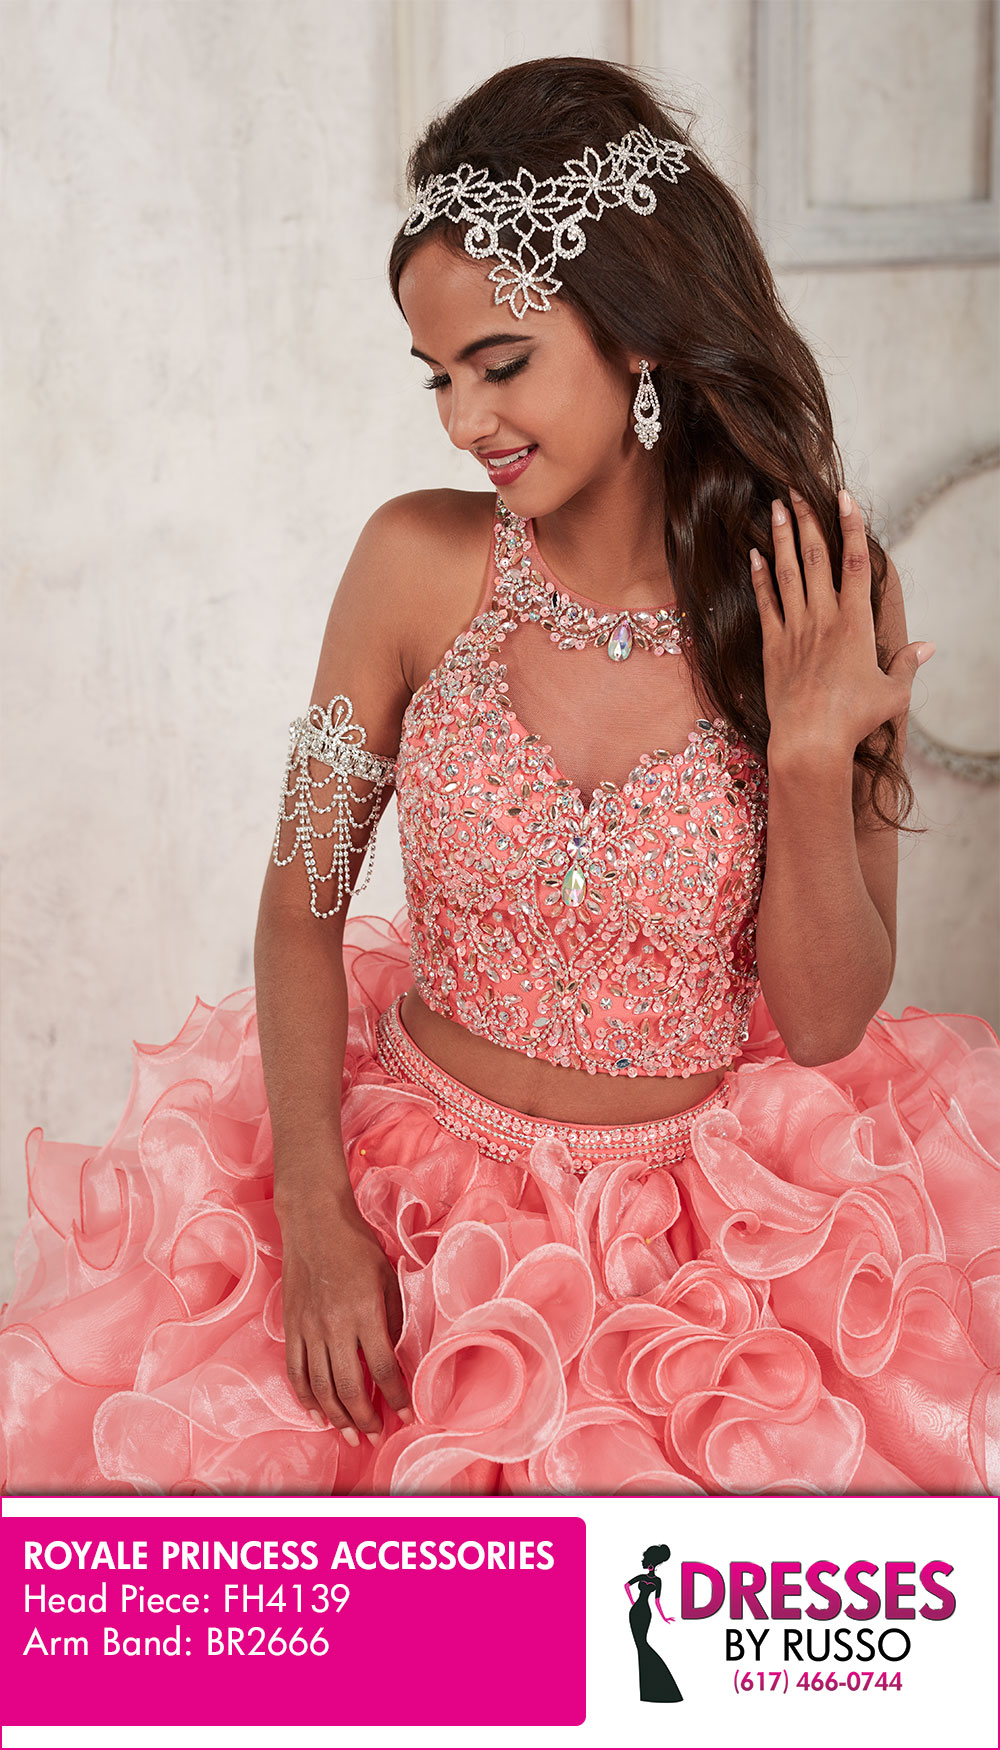 Quinceanera - Page 8 of 8 - Dresses by Russo Boston